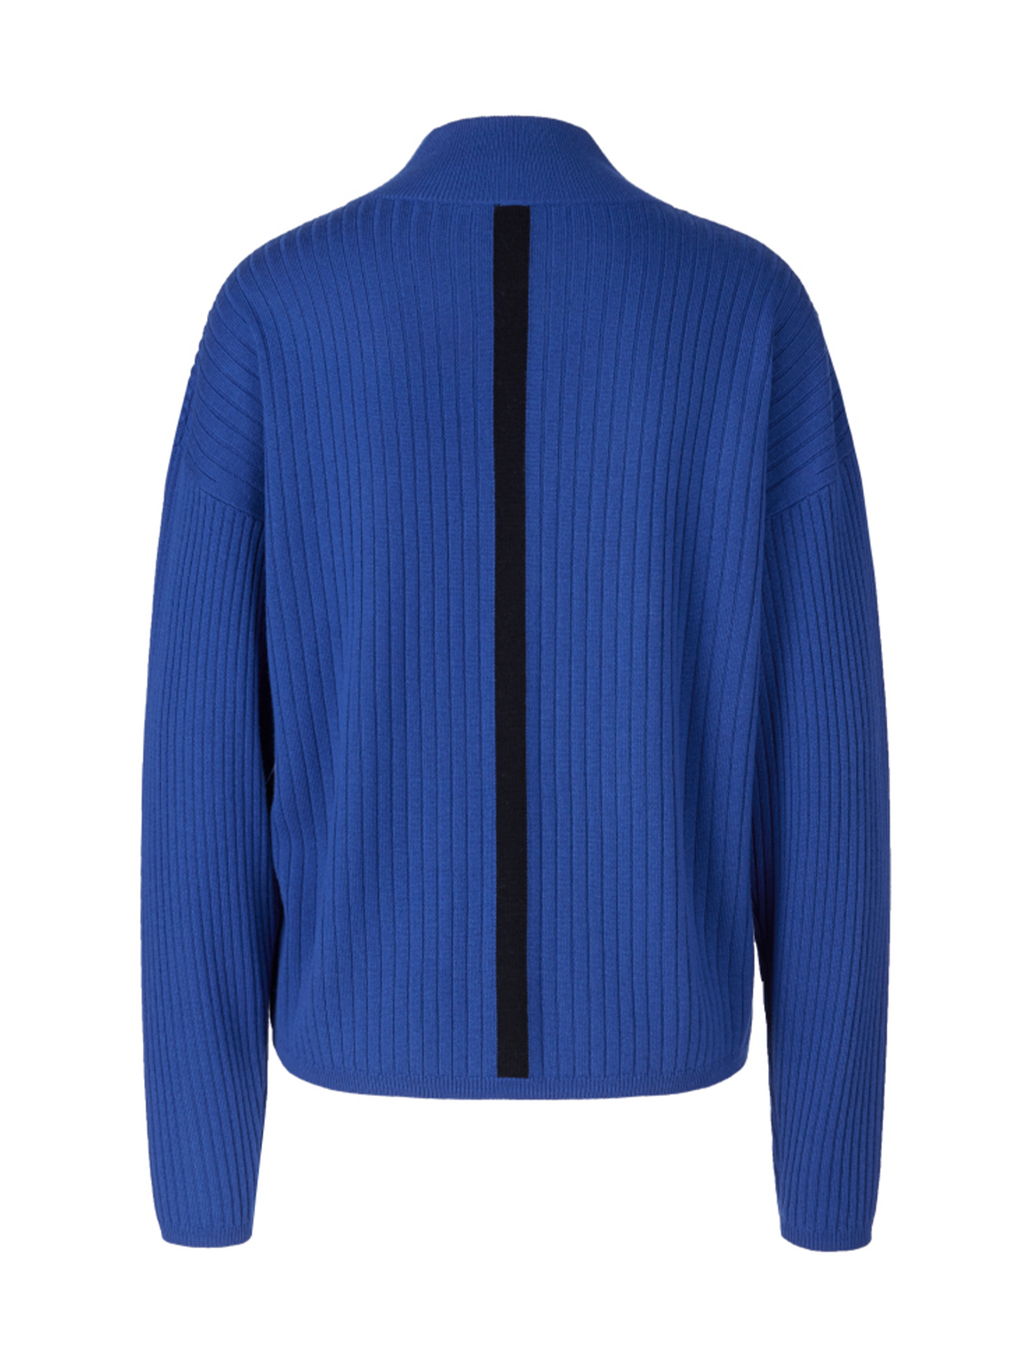 Marc Cain Sport Knitted Zip Jacket